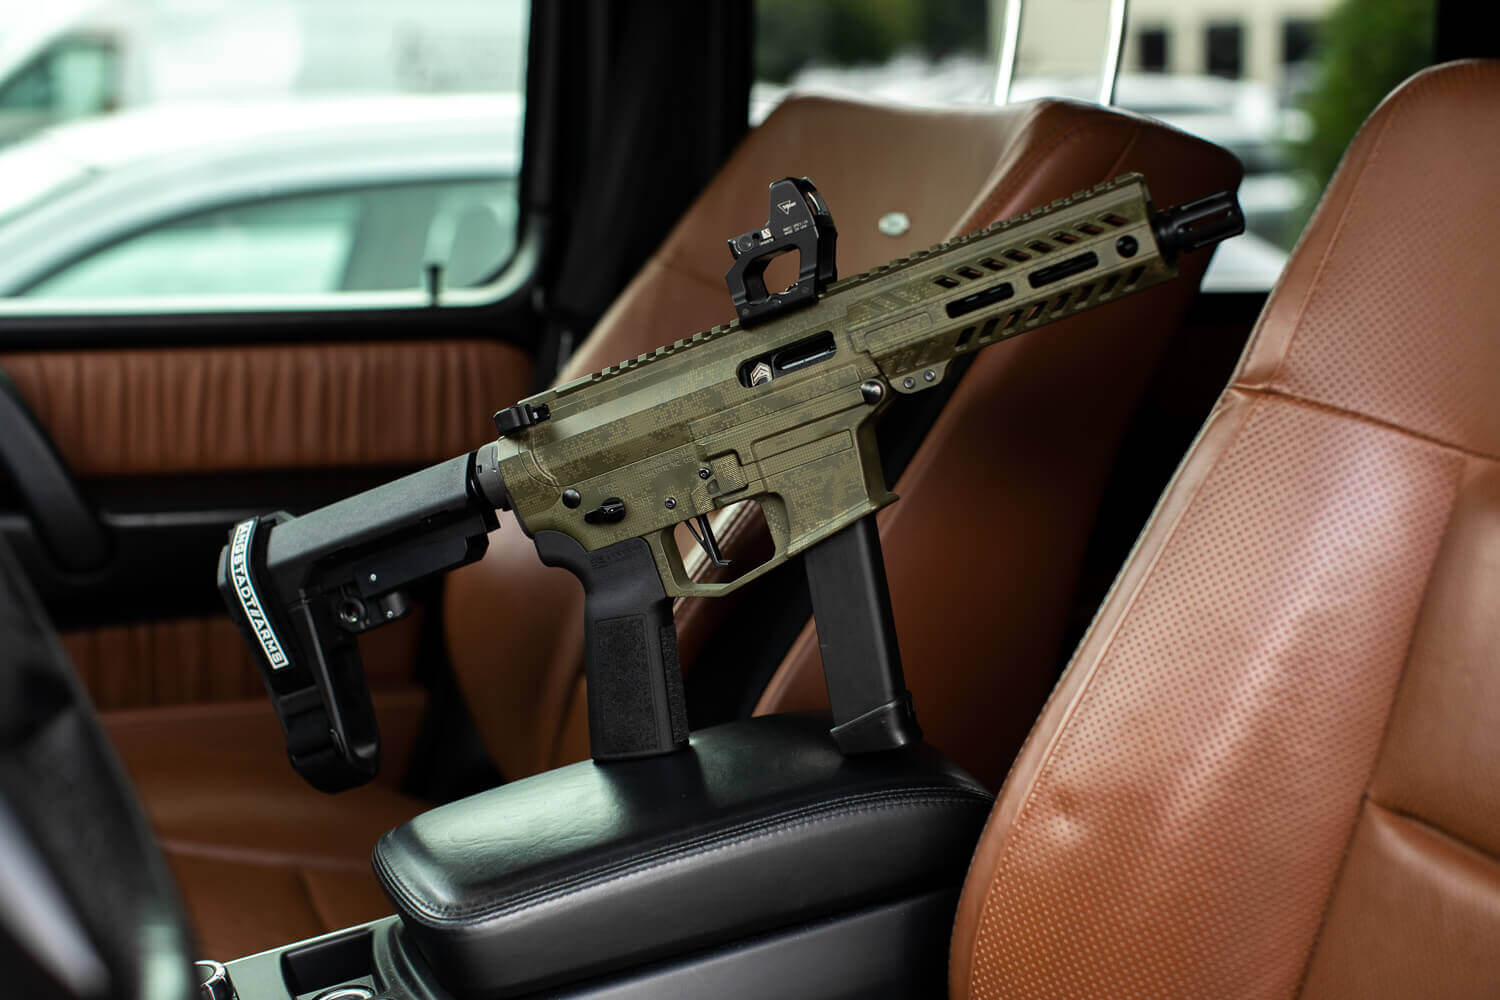 ANGSTADT ARMS DEBUTS LIMITED EDITION OD GREEN HALFTONE UDP-9 PISTOL